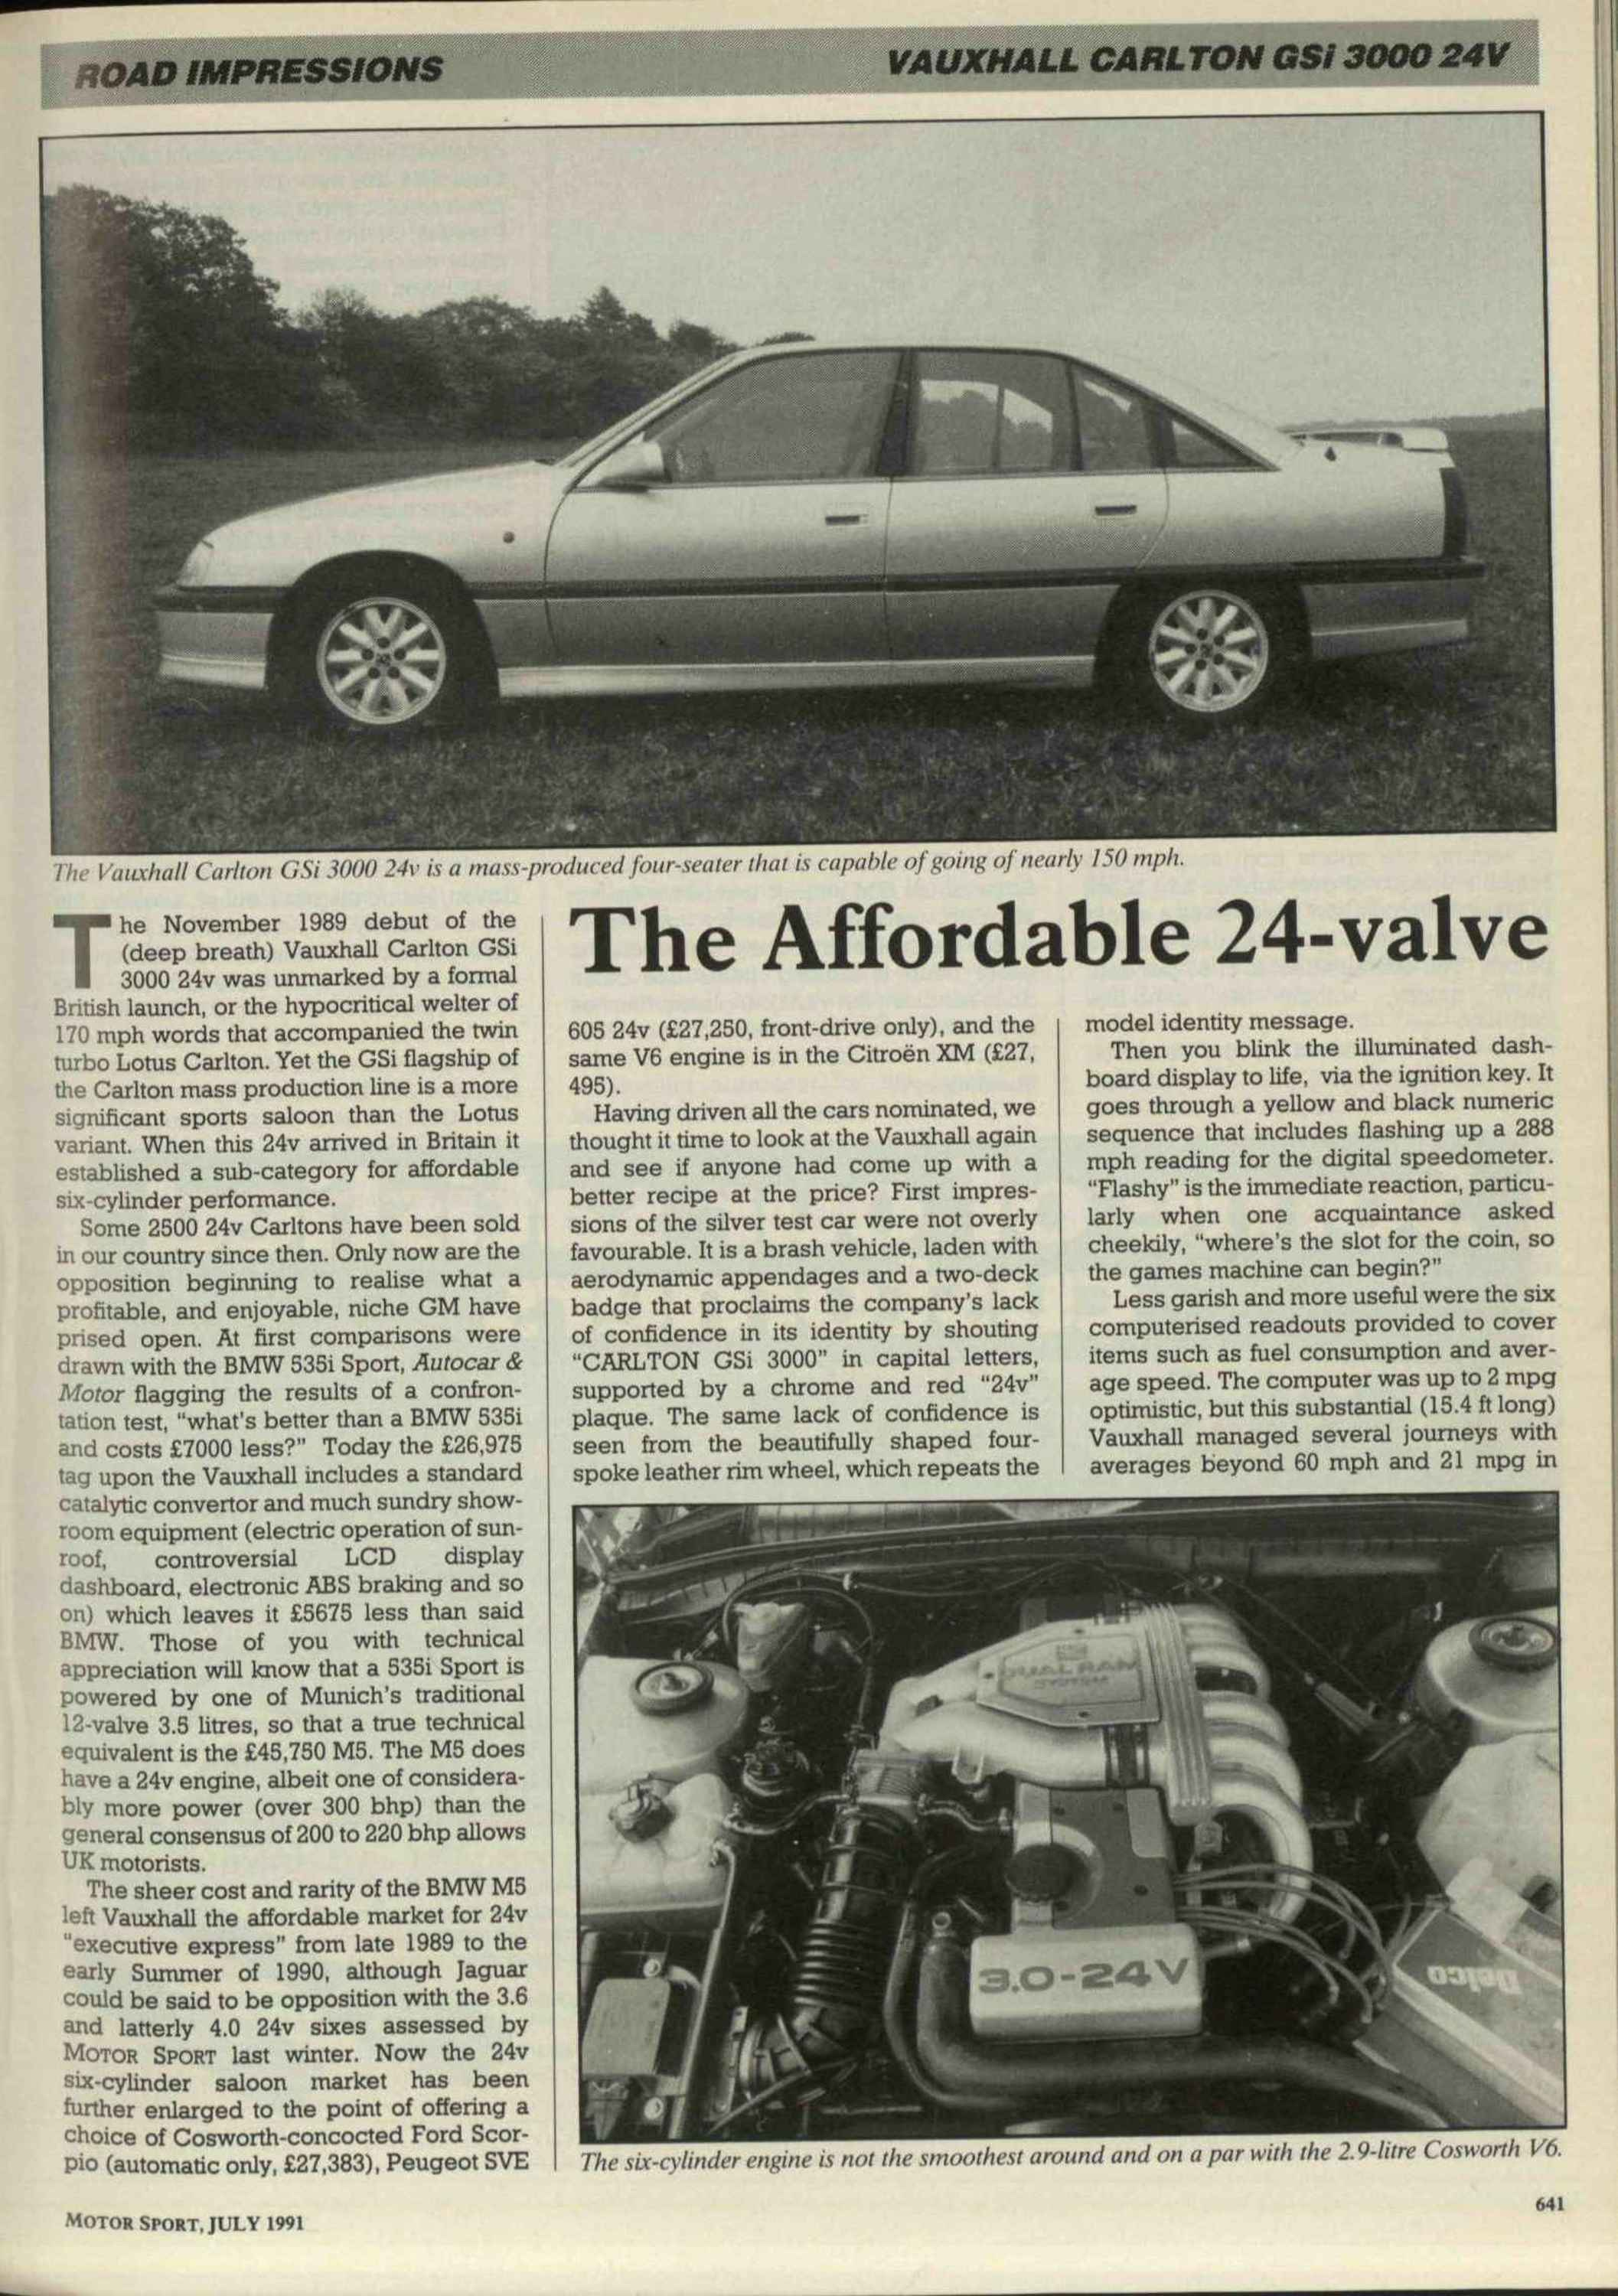 Road Impressions Vauxhall Carlton Gsi 3000 24v Motor Sport Peugeot 605 Injection And Ignition Wiring Diagram Magazine Archive